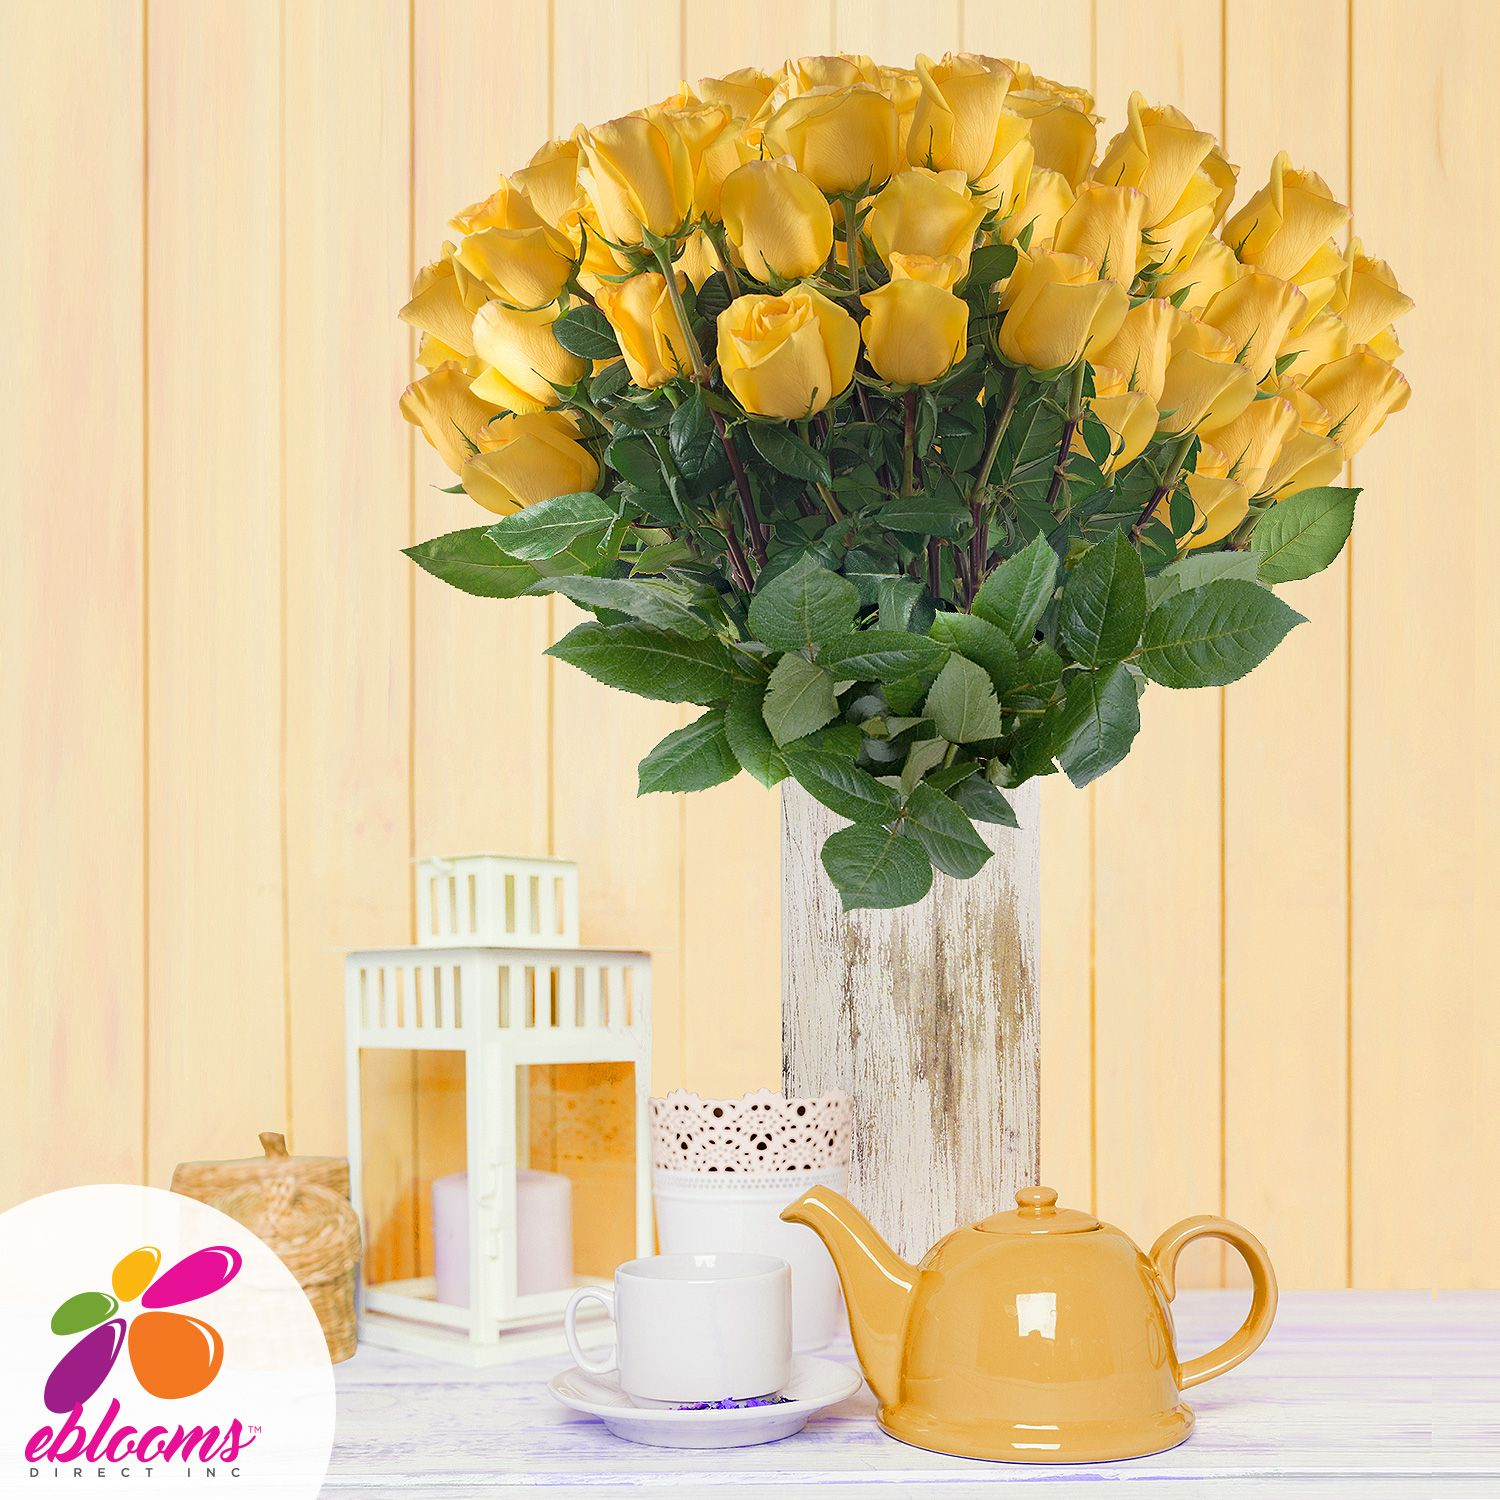 Wholesale Flowers For Weddings Events: 50 Stems- EbloomsDirect